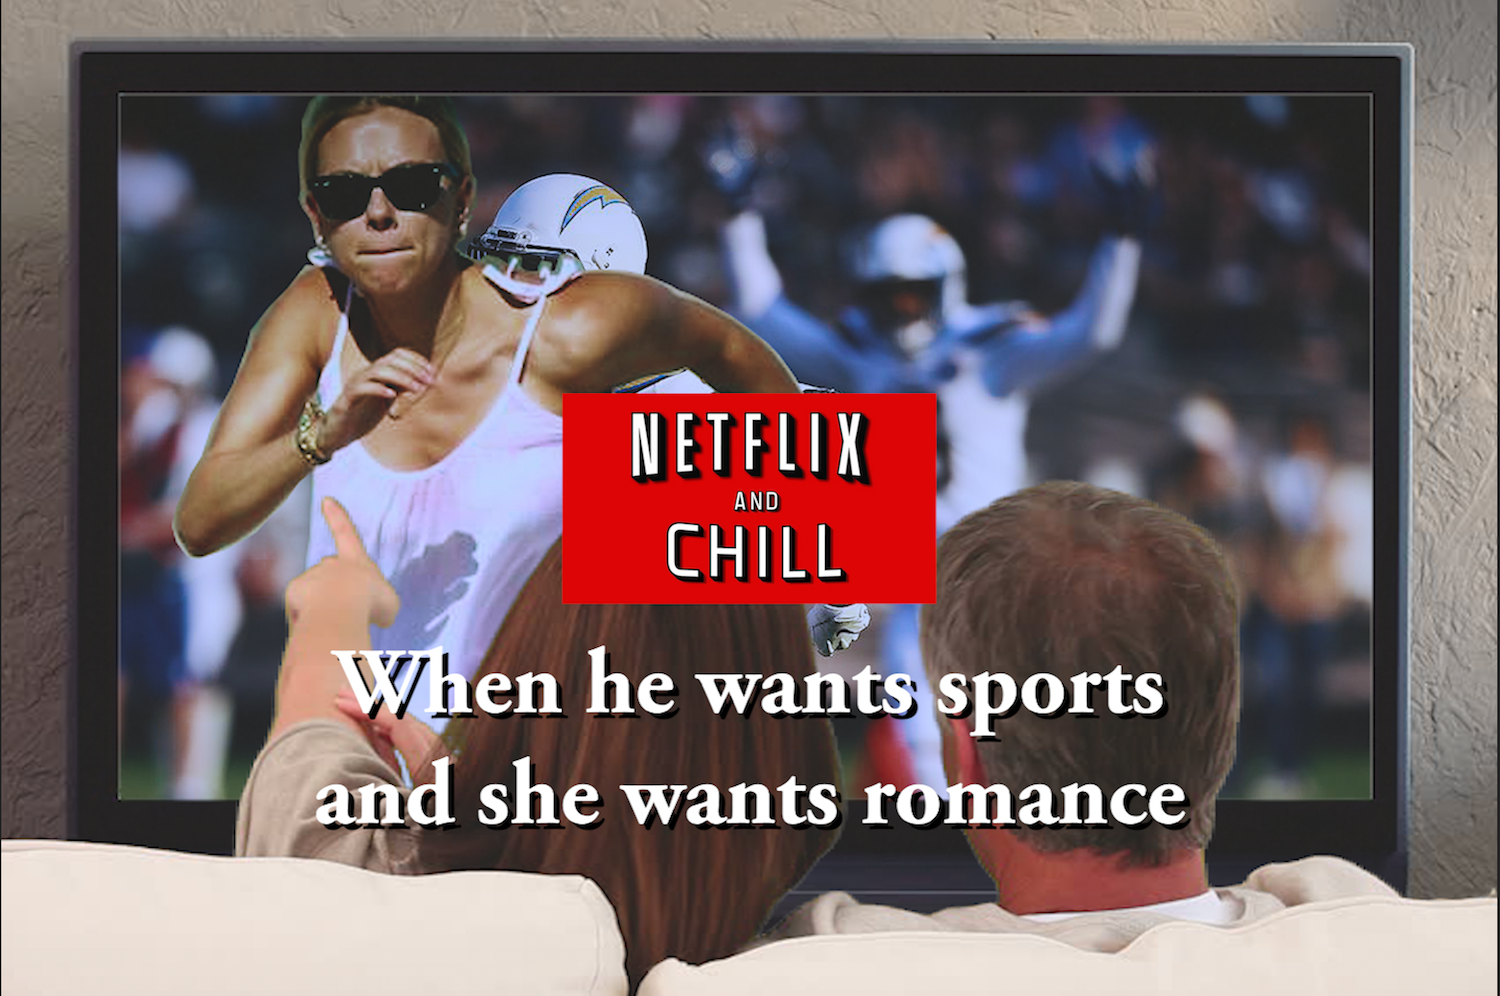 When he wants to watch sports, but she's in the mood for romance, Netflix has the new category just for you!